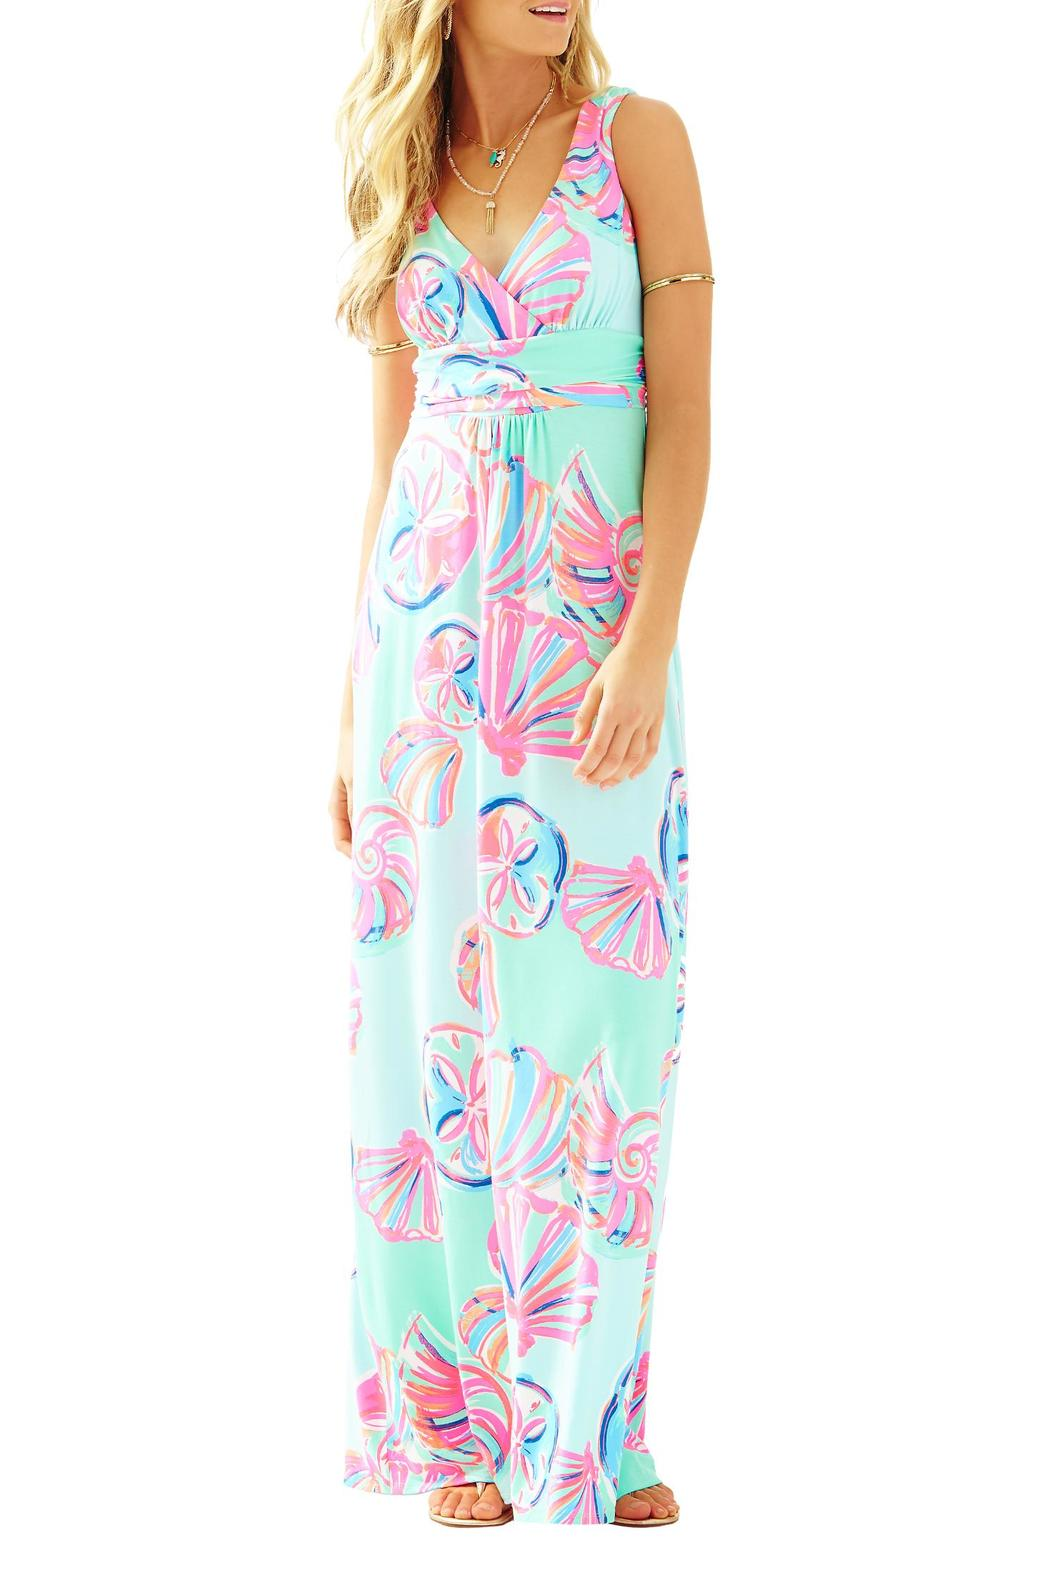 Lilly Pulitzer Sloane Maxi Dress From Sandestin Golf And Beach